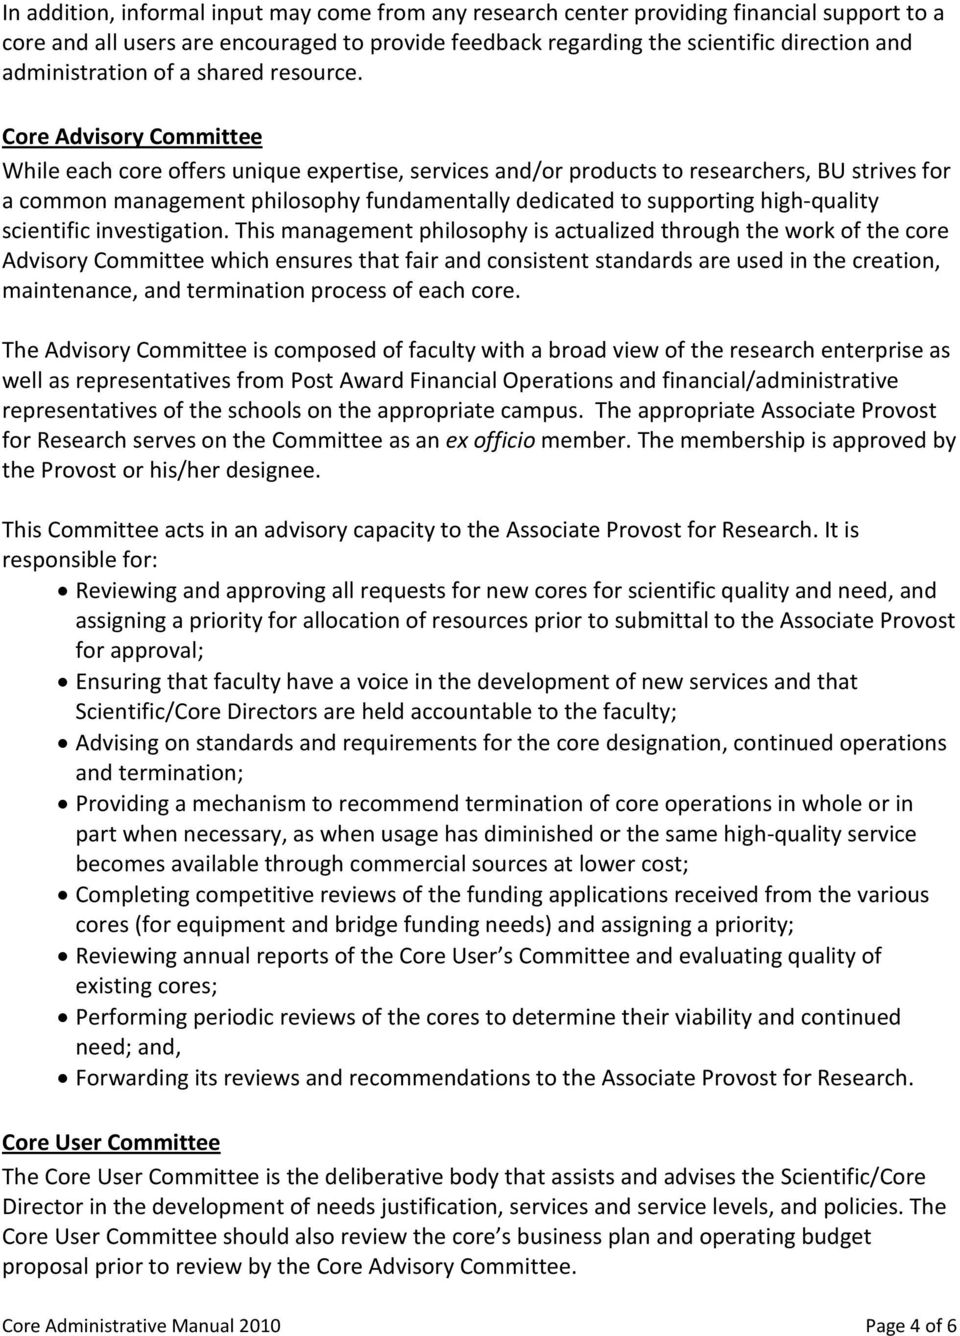 Core Advisory Committee While each core offers unique expertise, services and/or products to researchers, BU strives for a common management philosophy fundamentally dedicated to supporting